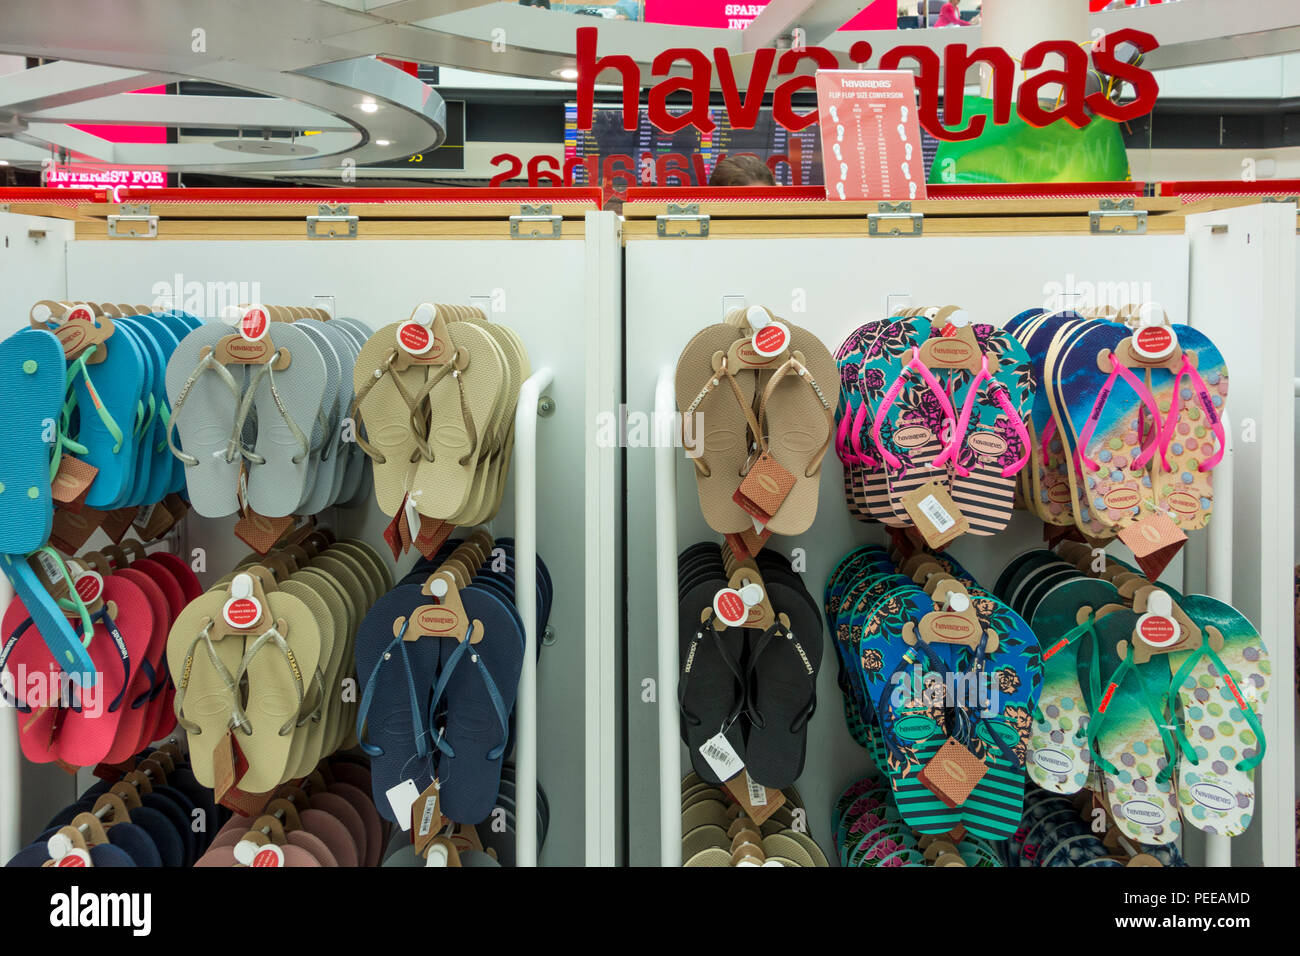 b49fe7206 Display of flip flops in a Duty Free shop at Gatwick Airport, Crawley, West